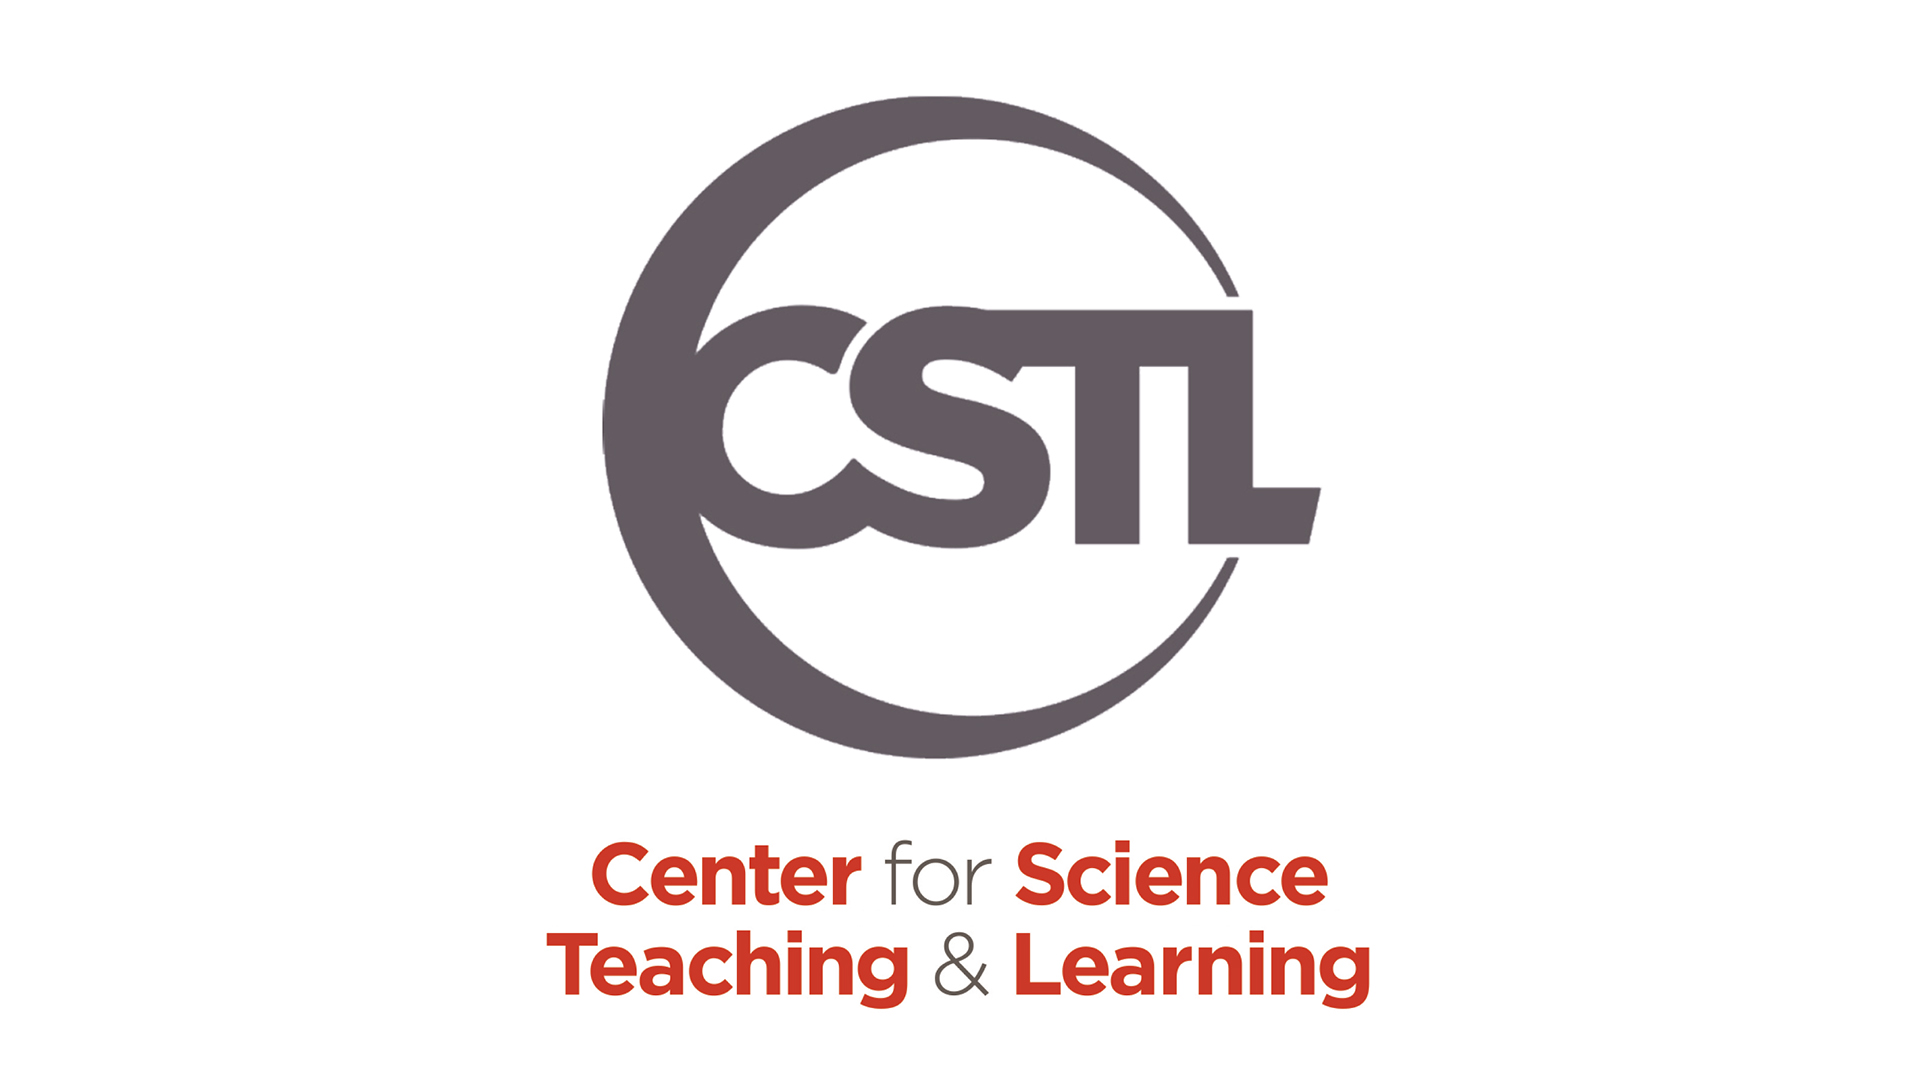 IN PERSON Sunday Science – Gel Electrophoresis at The Center for Science Teaching & Learning